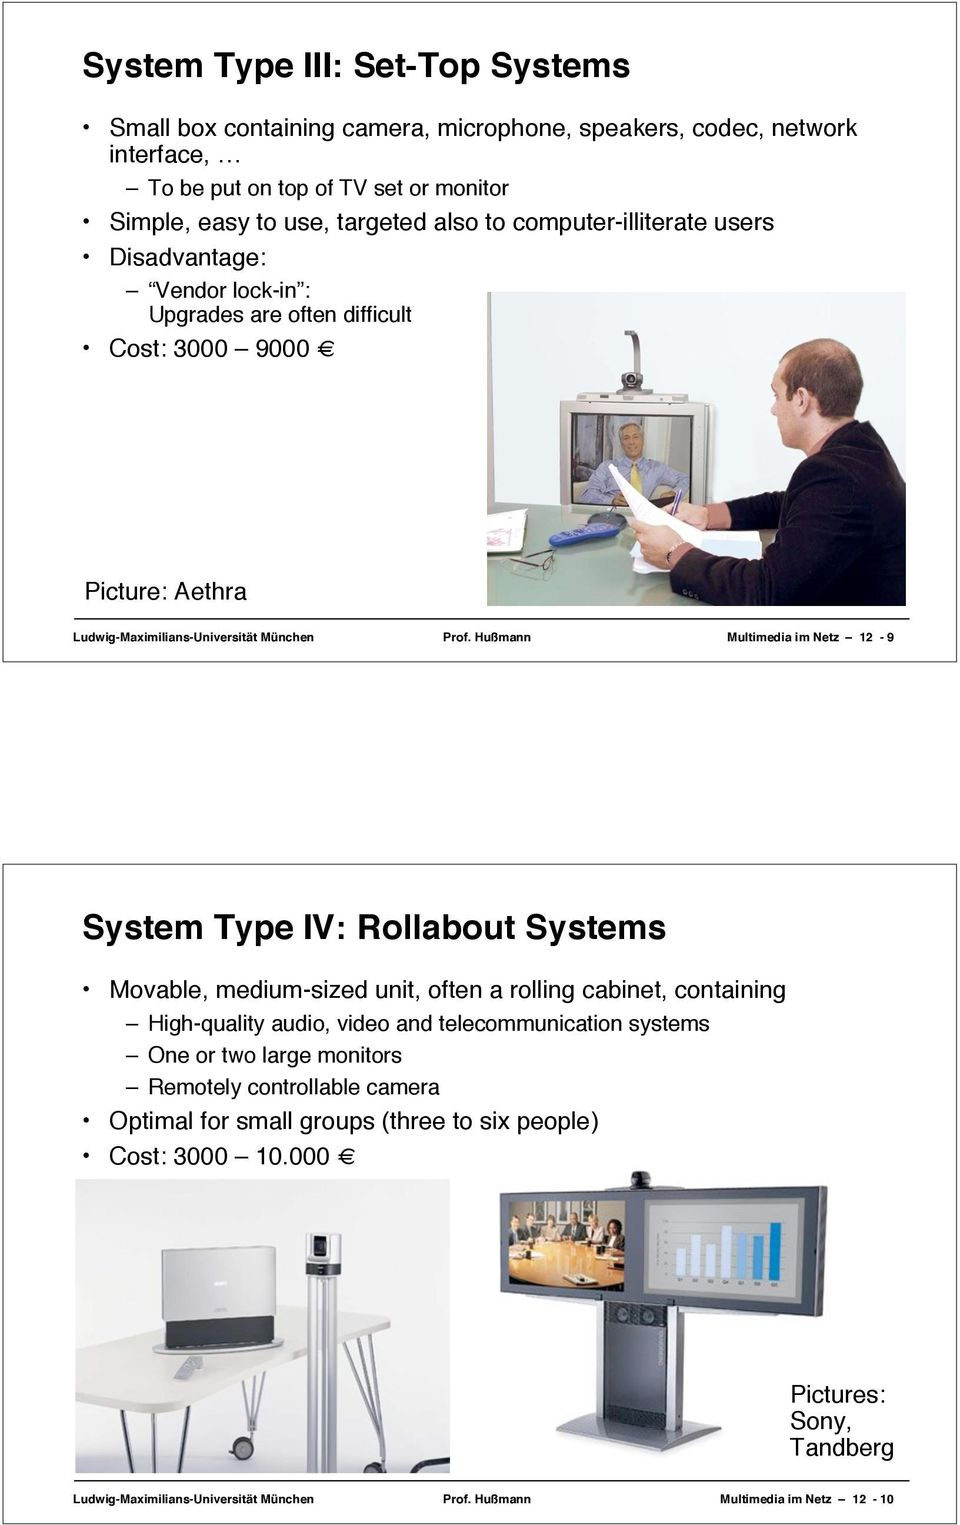 Hußmann Multimedia im Netz 12-9 System Type IV: Rollabout Systems Movable, medium-sized unit, often a rolling cabinet, containing High-quality audio, video and telecommunication systems One